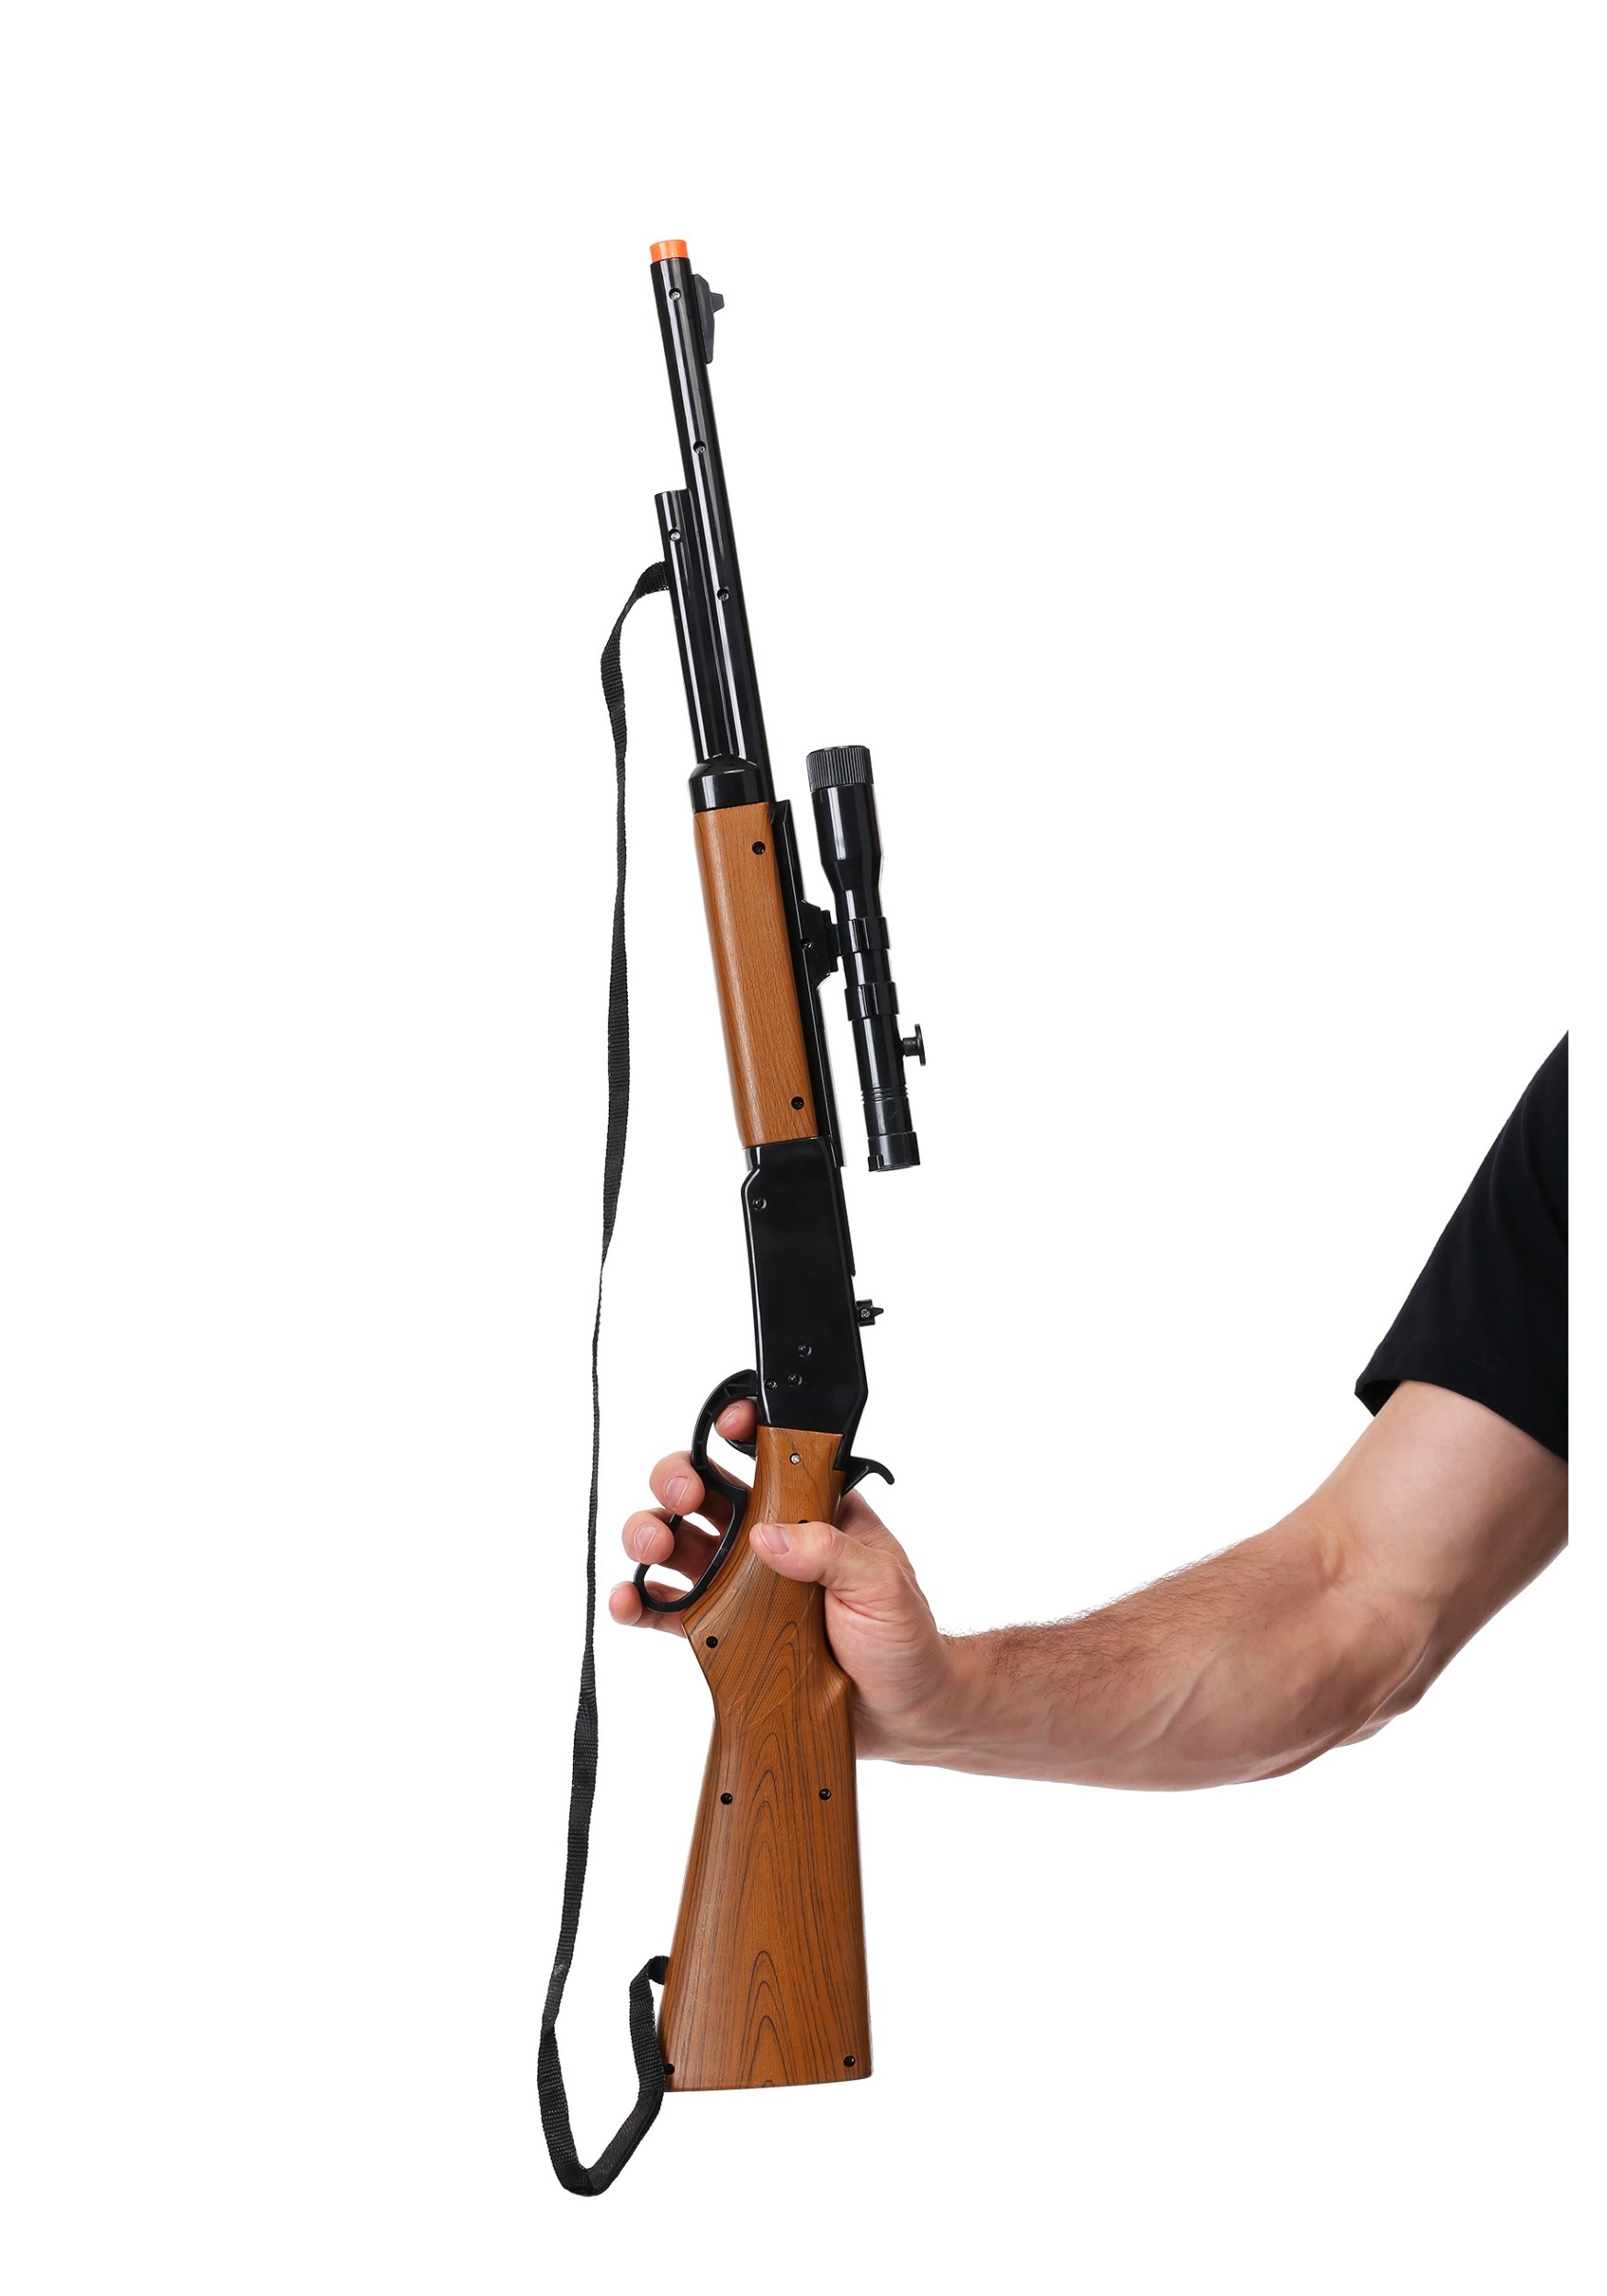 Toy Lever Action Repeater Rifle with Scope SND10830R